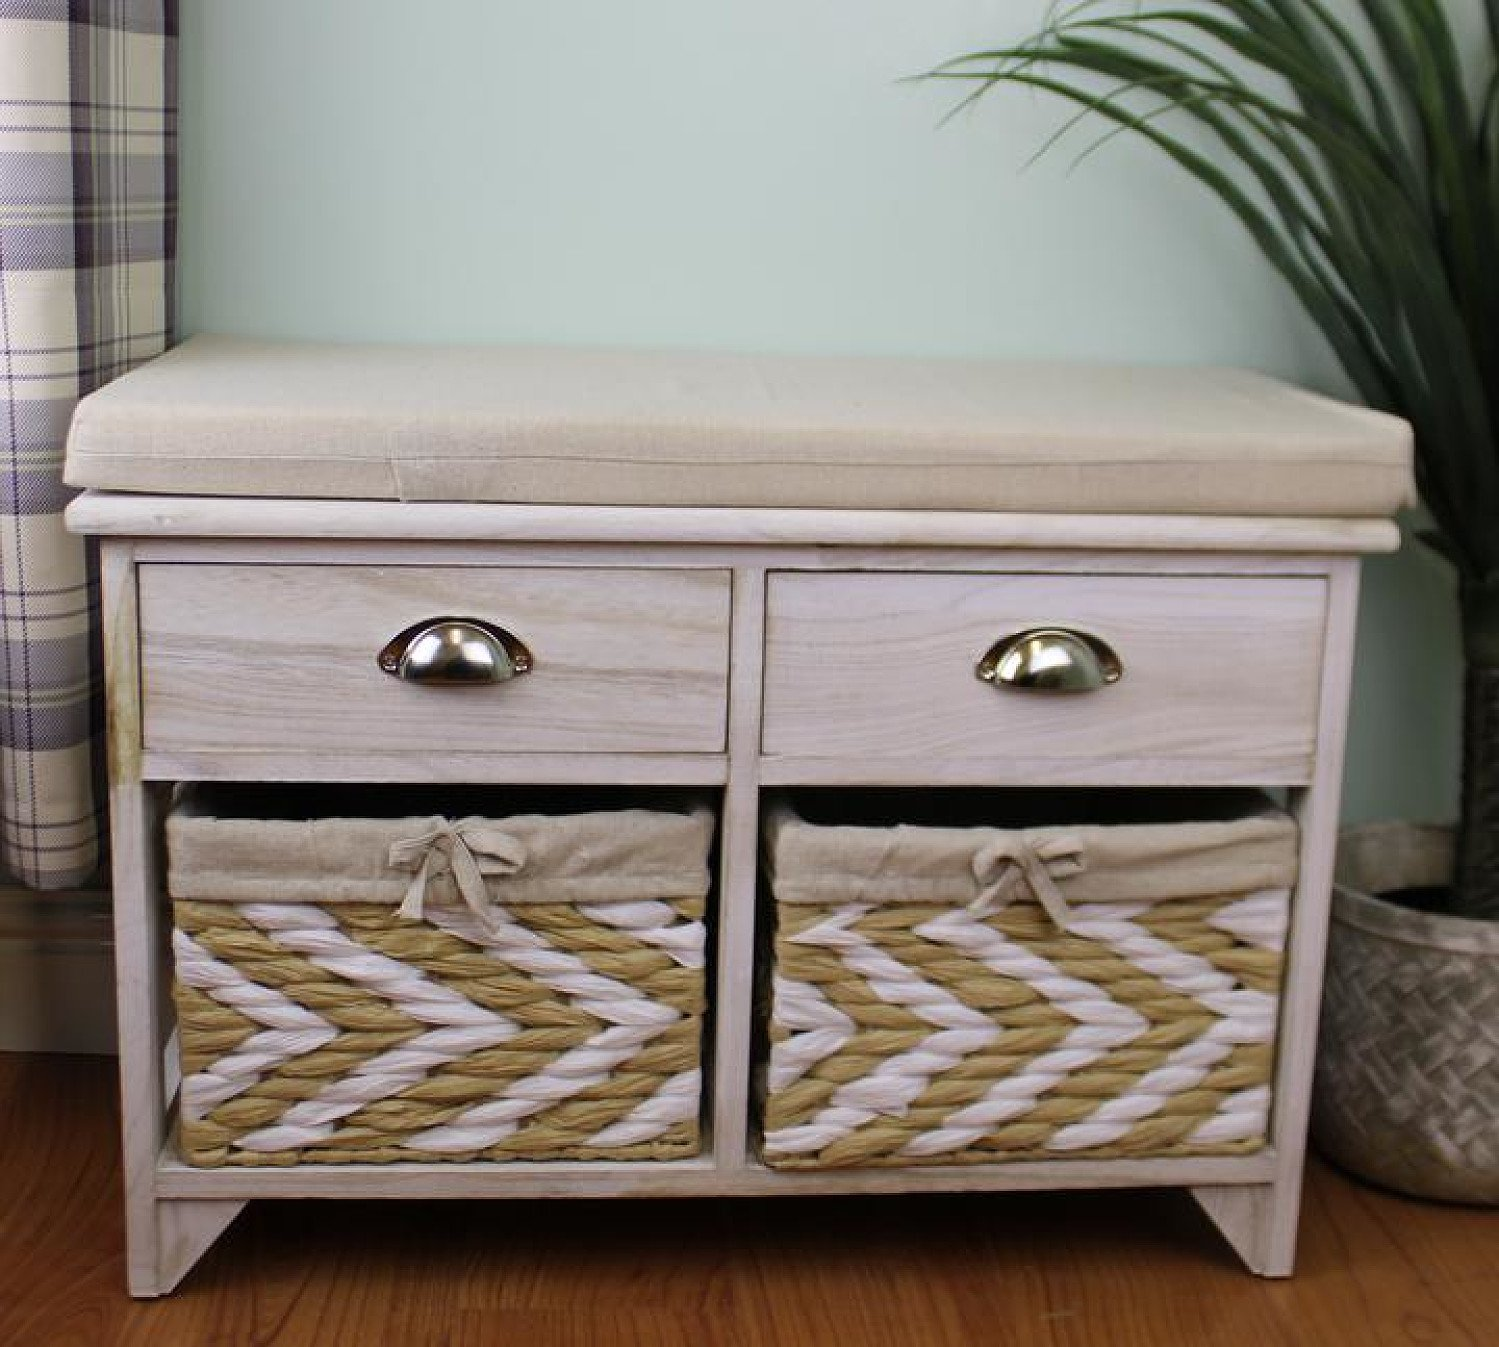 White Wooden Storage Bench With 2 Drawers & 2 Baskets Free Postage